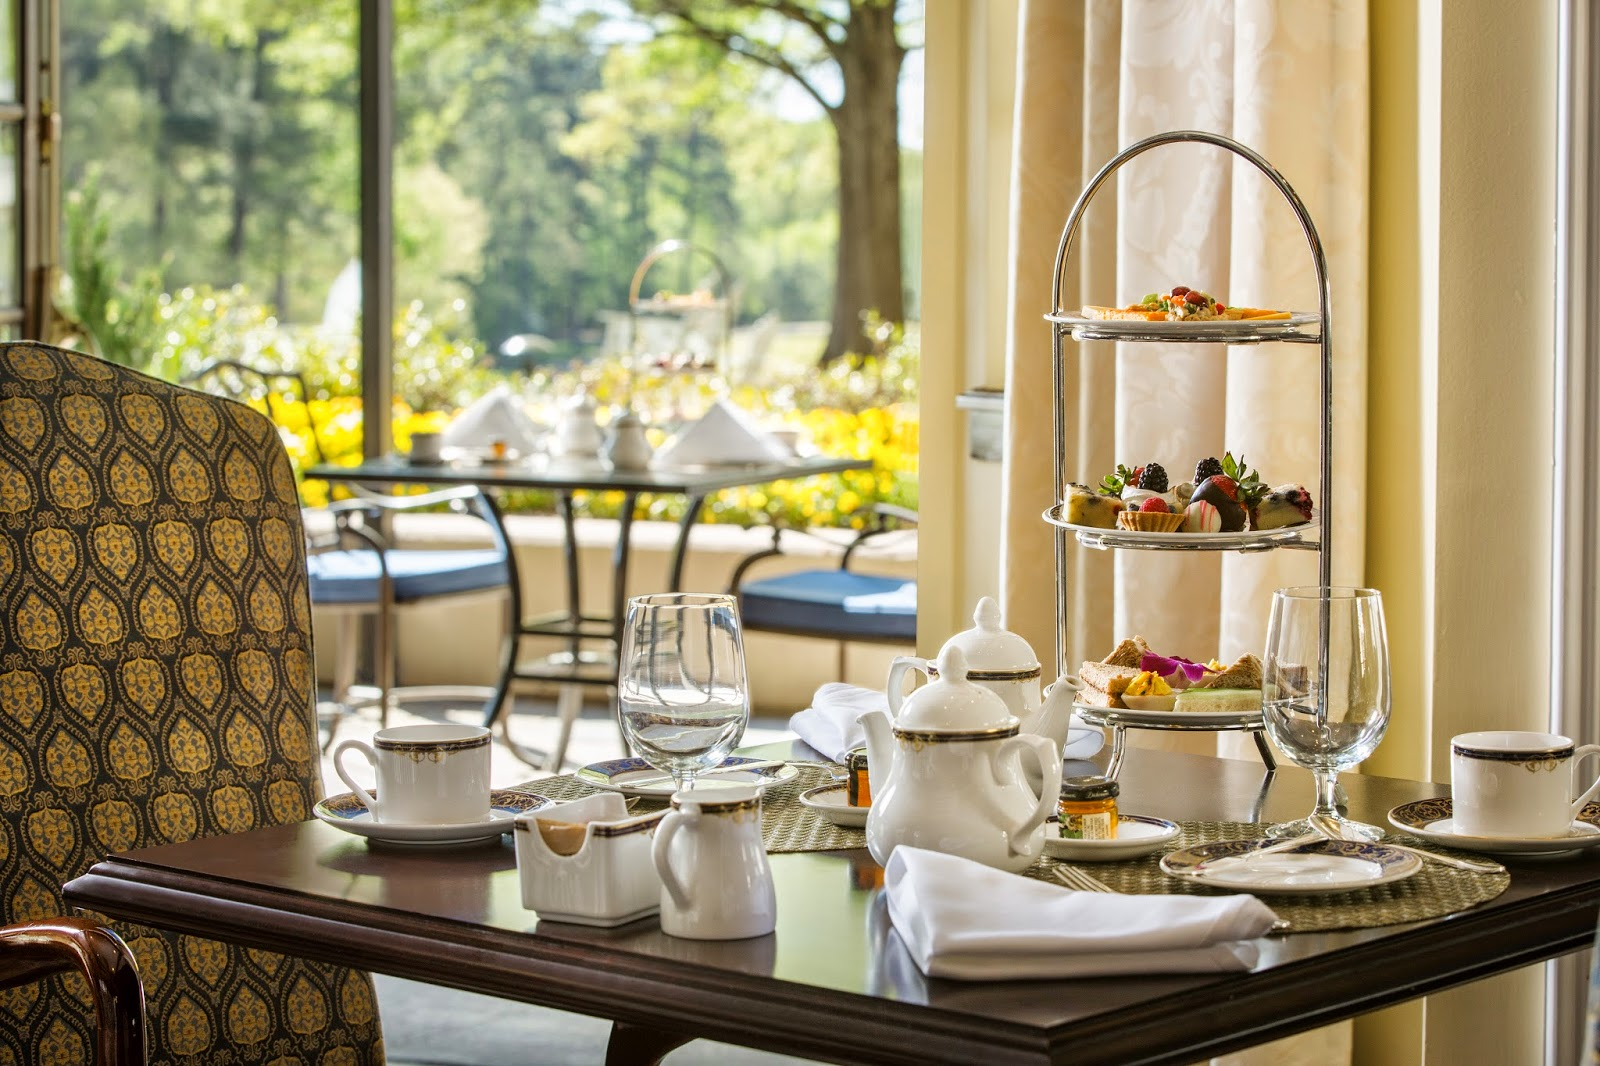 #Outaboutnc Experience Tea at the Washington Duke Inn in Durham (Two for Tea Giveaway)